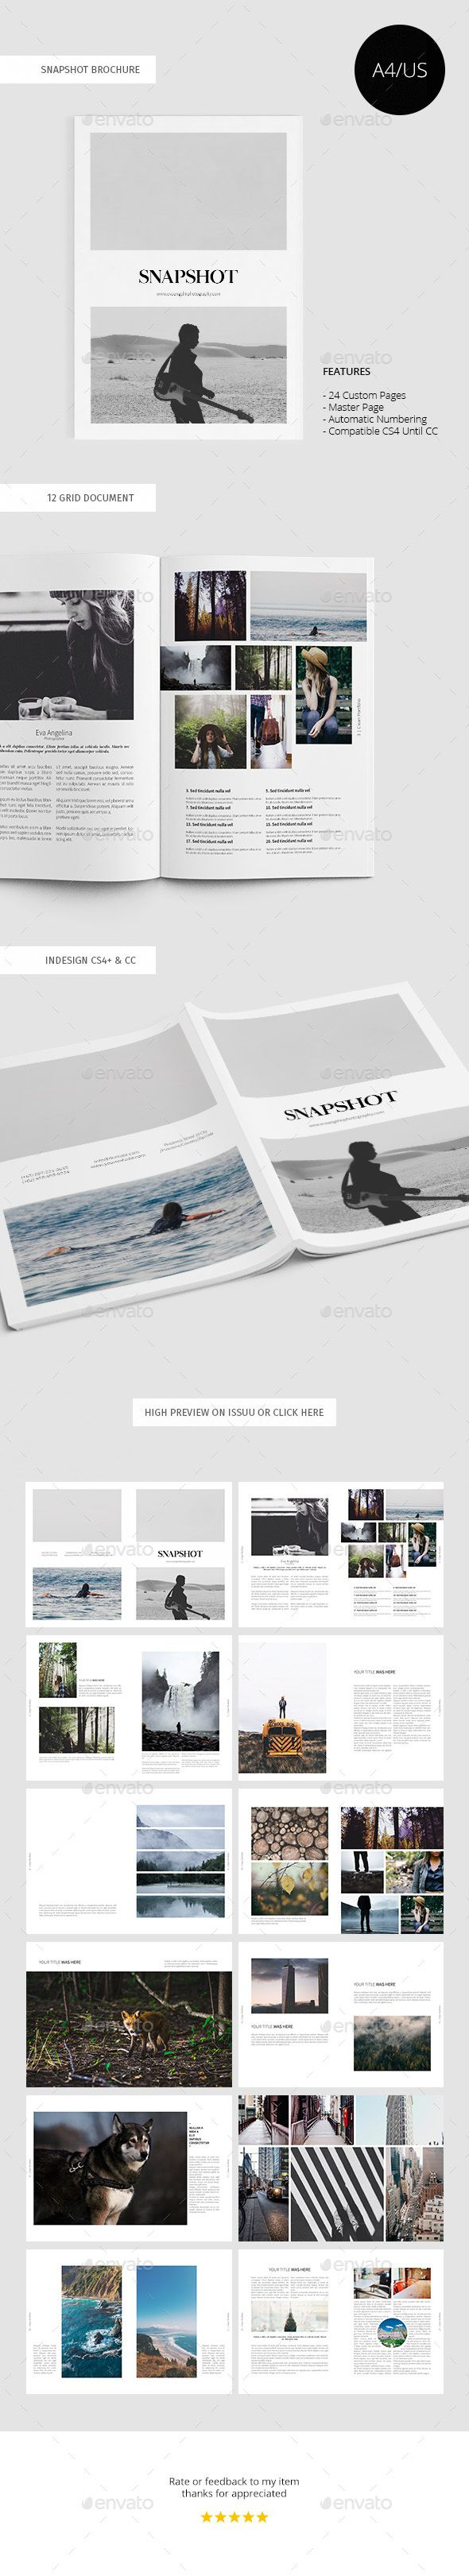 Snapshot Photography Brochure Template InDesign INDD #design Download: http://graphicriver.net/item/snapshot-photography-brochure/13871727?ref=ksioks